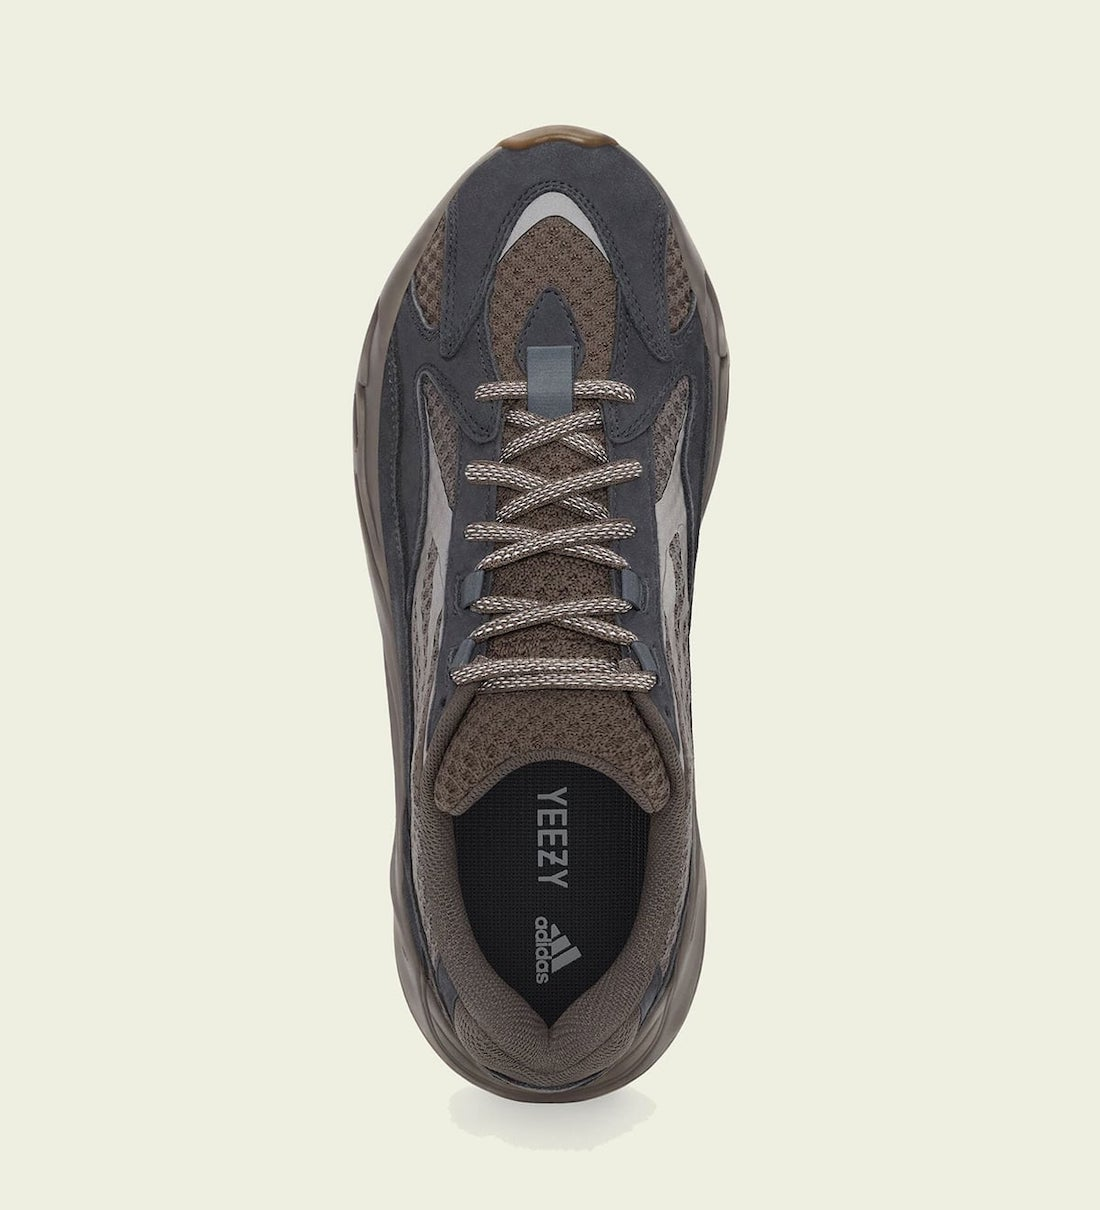 adidas-Yeezy-Boost-700-V2-Mauve-GZ0724-Release-Date-3